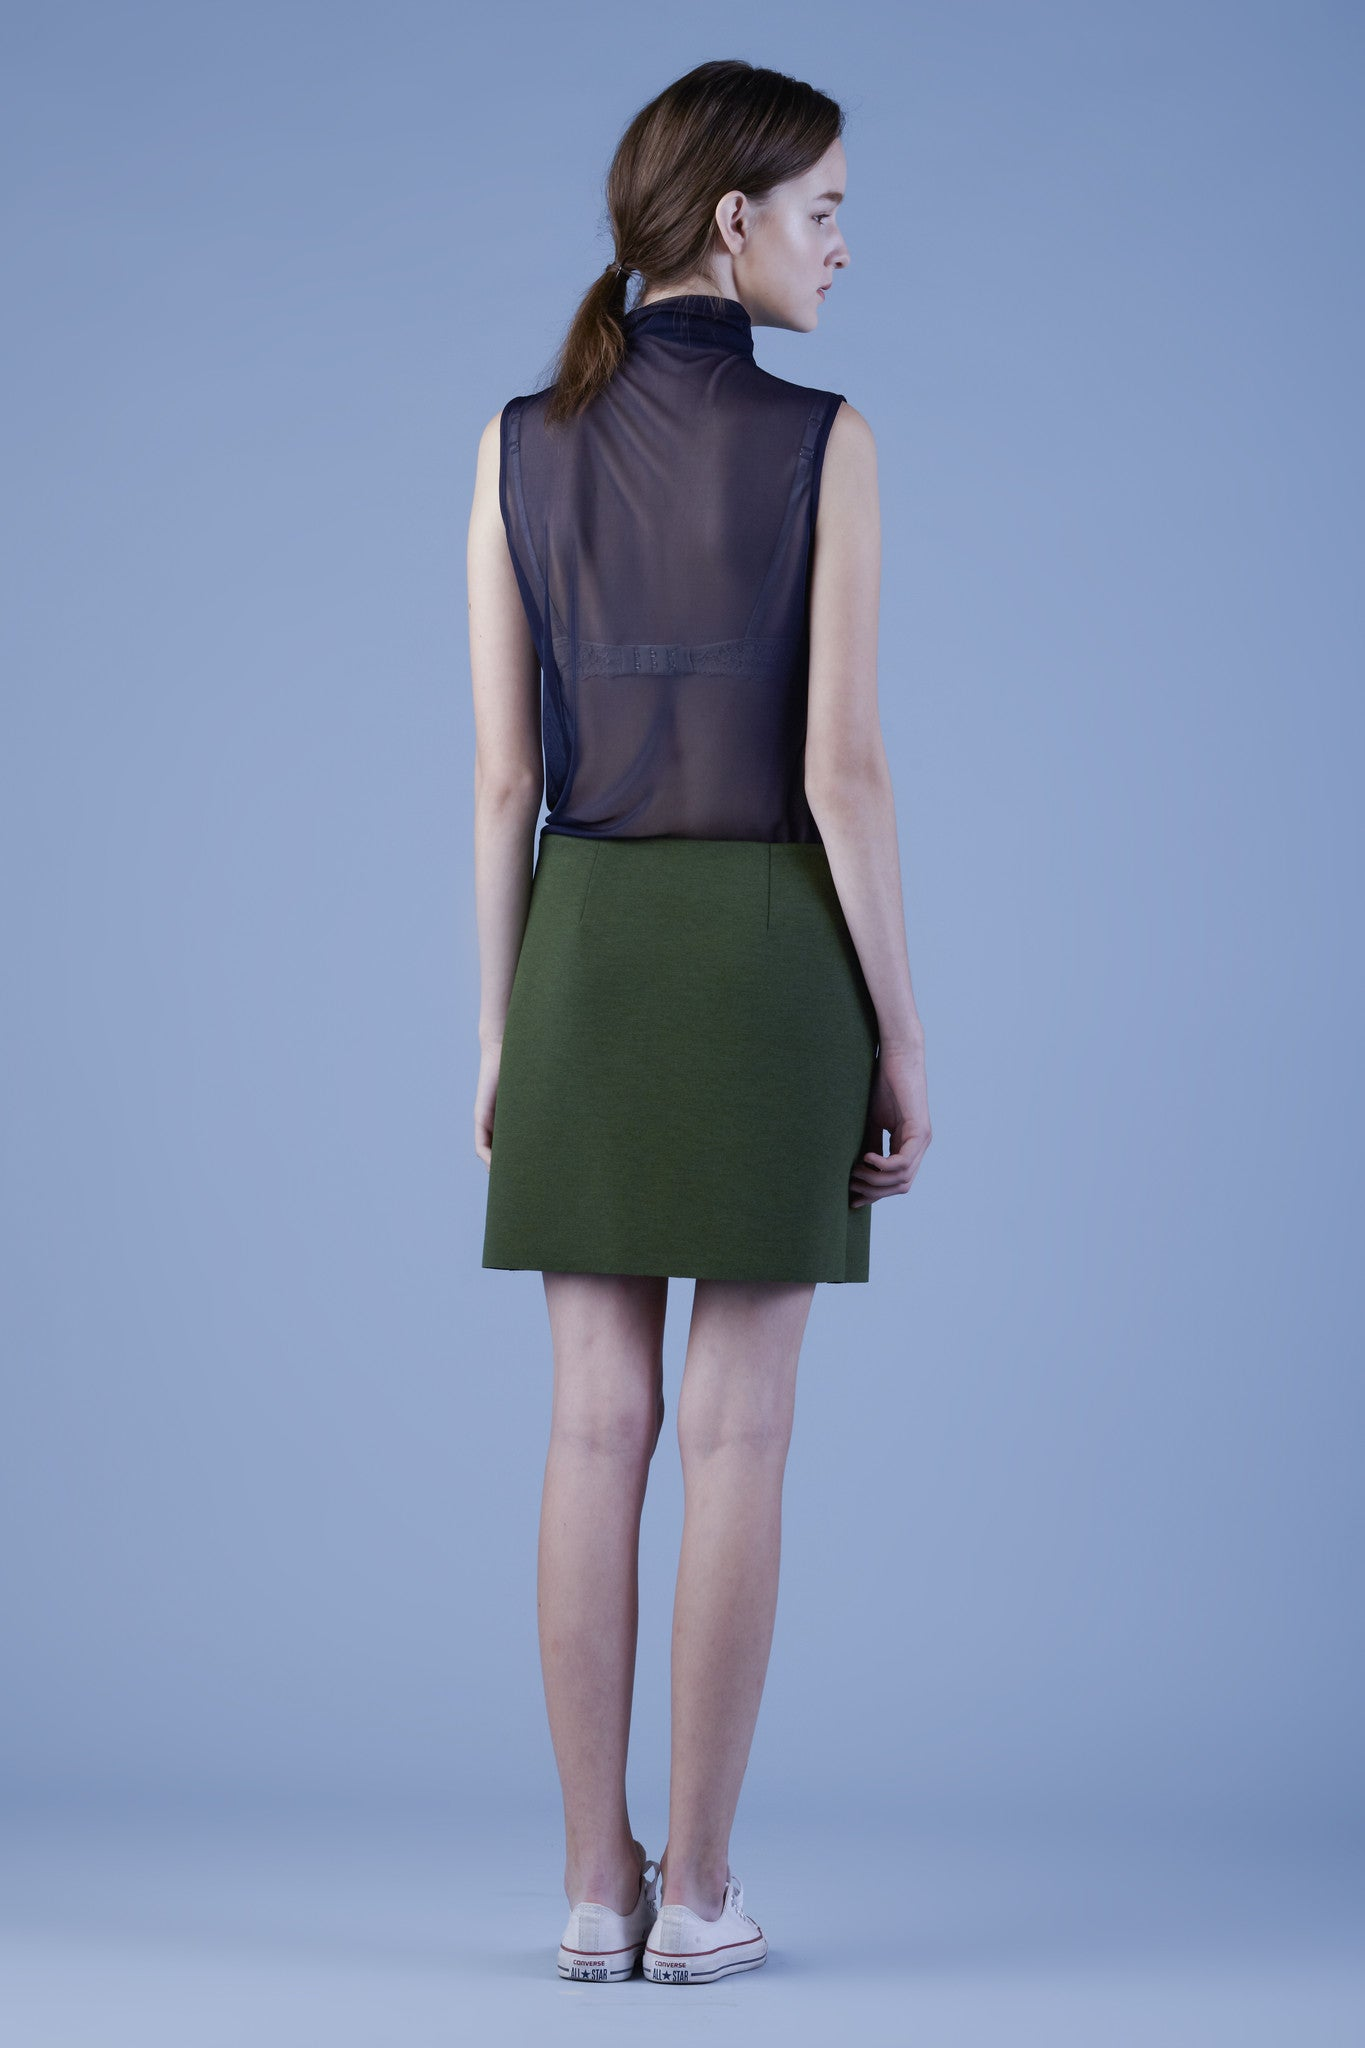 Micro Mesh Turtleneck Sleeveless Top #02